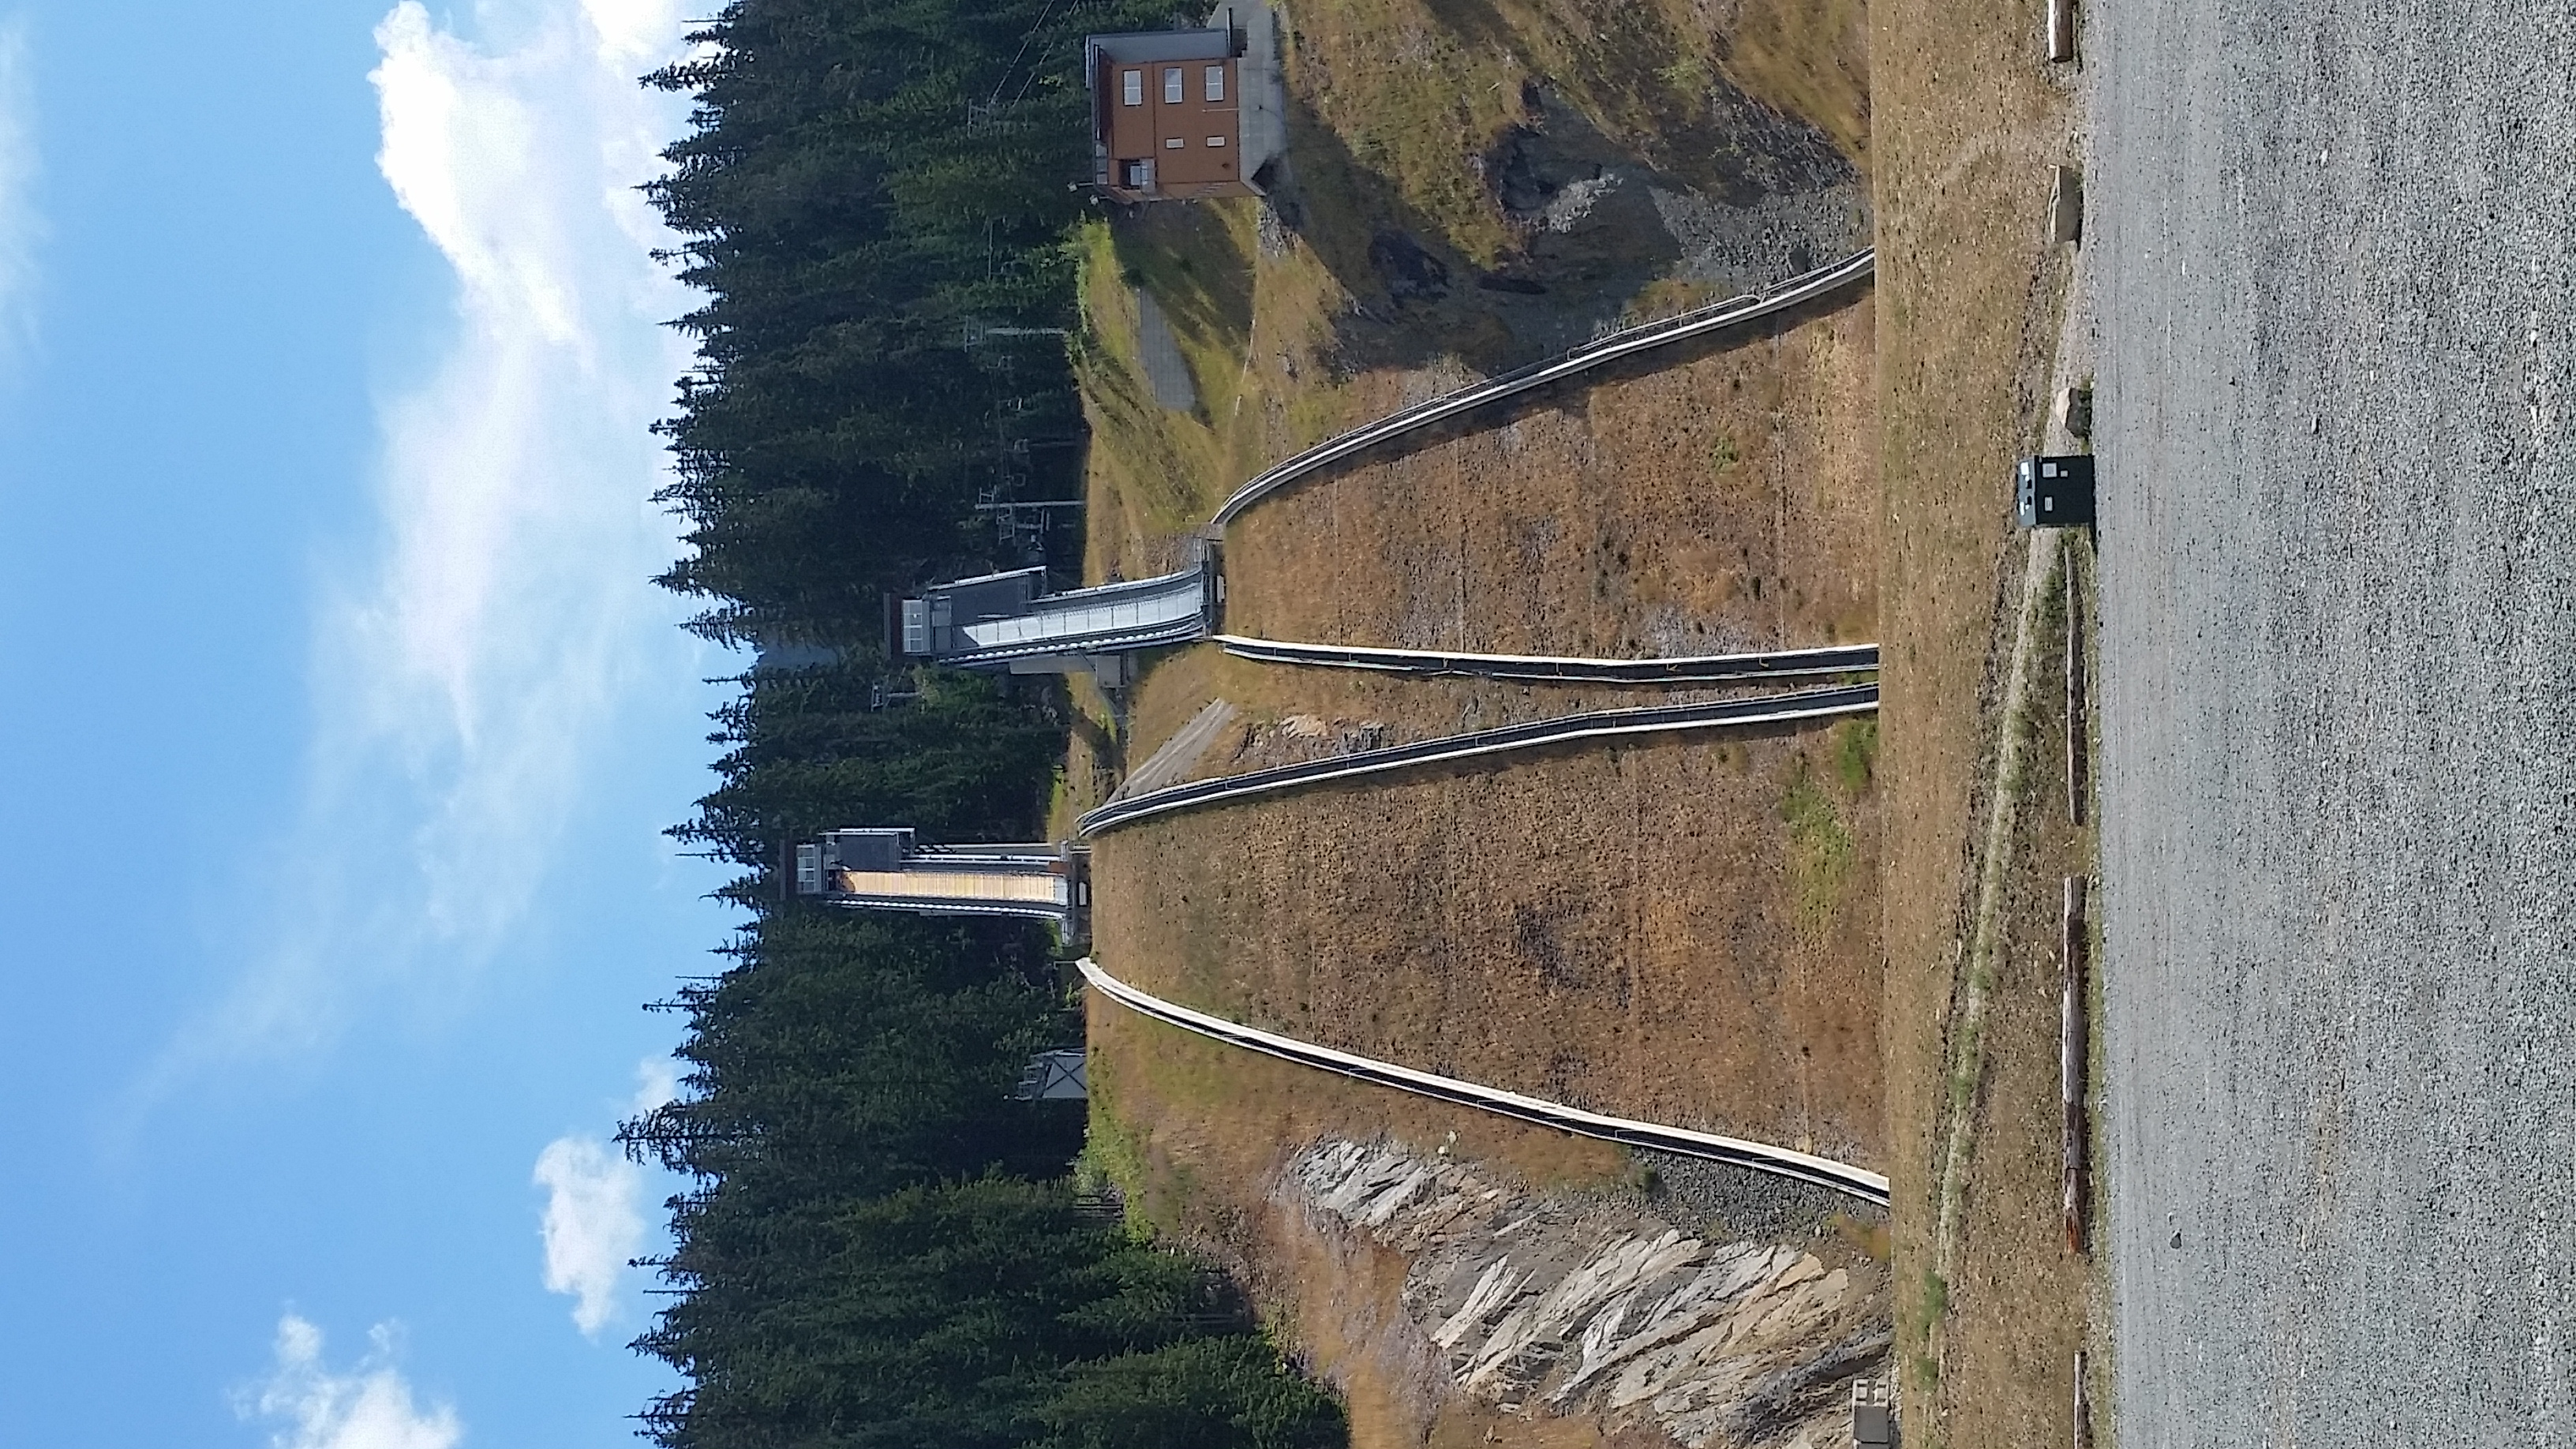 The 2010 Winter Olympics Ski Jumps near the turnaround on Callaghan Road. (Photo not from race day)